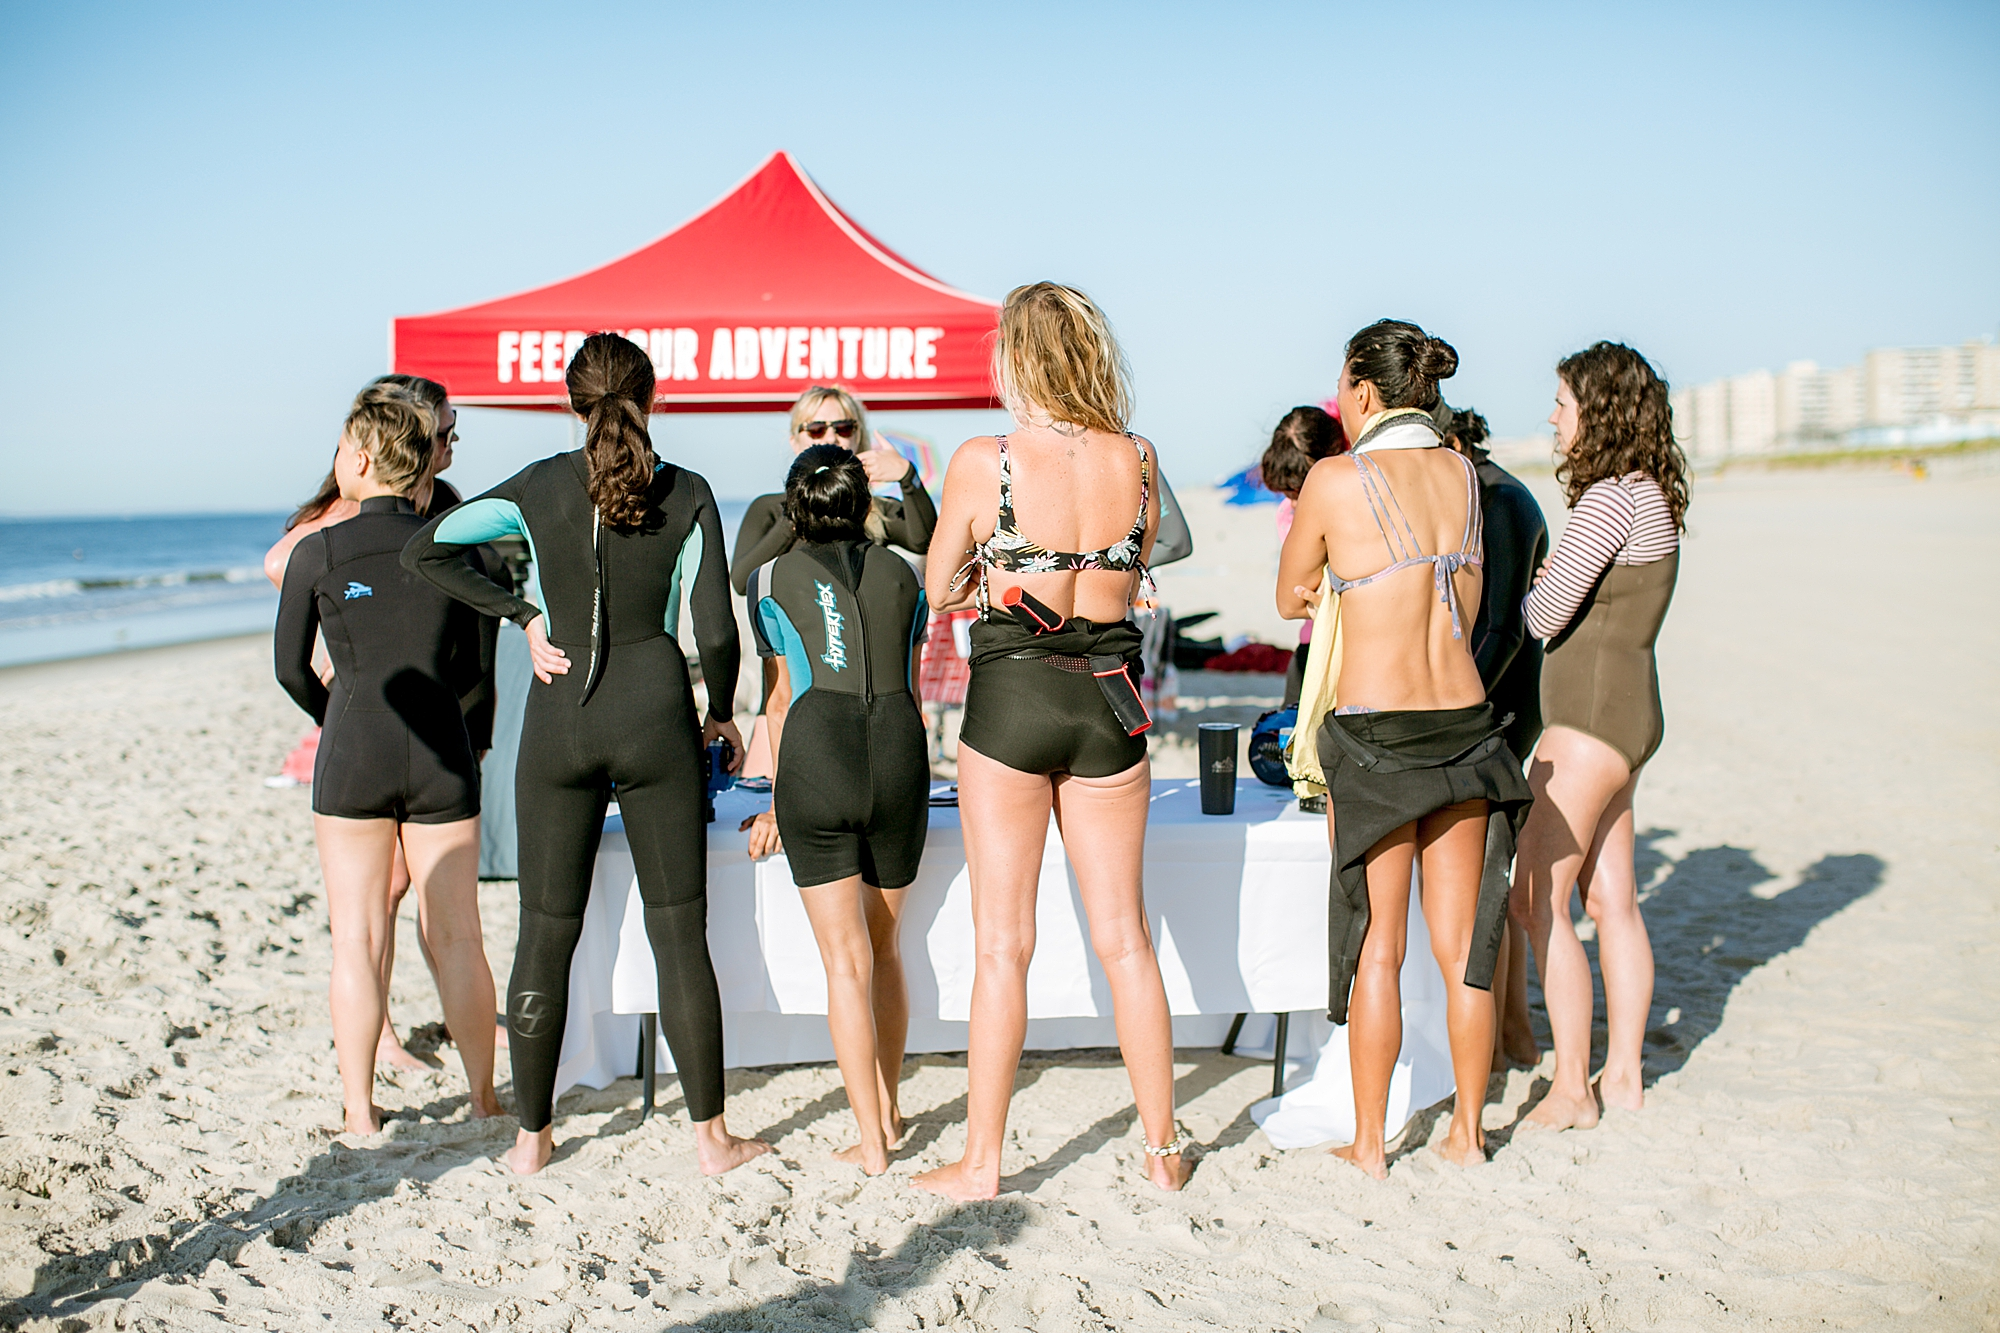 Women's Surf Film Festival - Women's Surf Photography Workshop by Bryanna Bradley - Photographer Kelee Bovelle @keleeb_0012.jpg